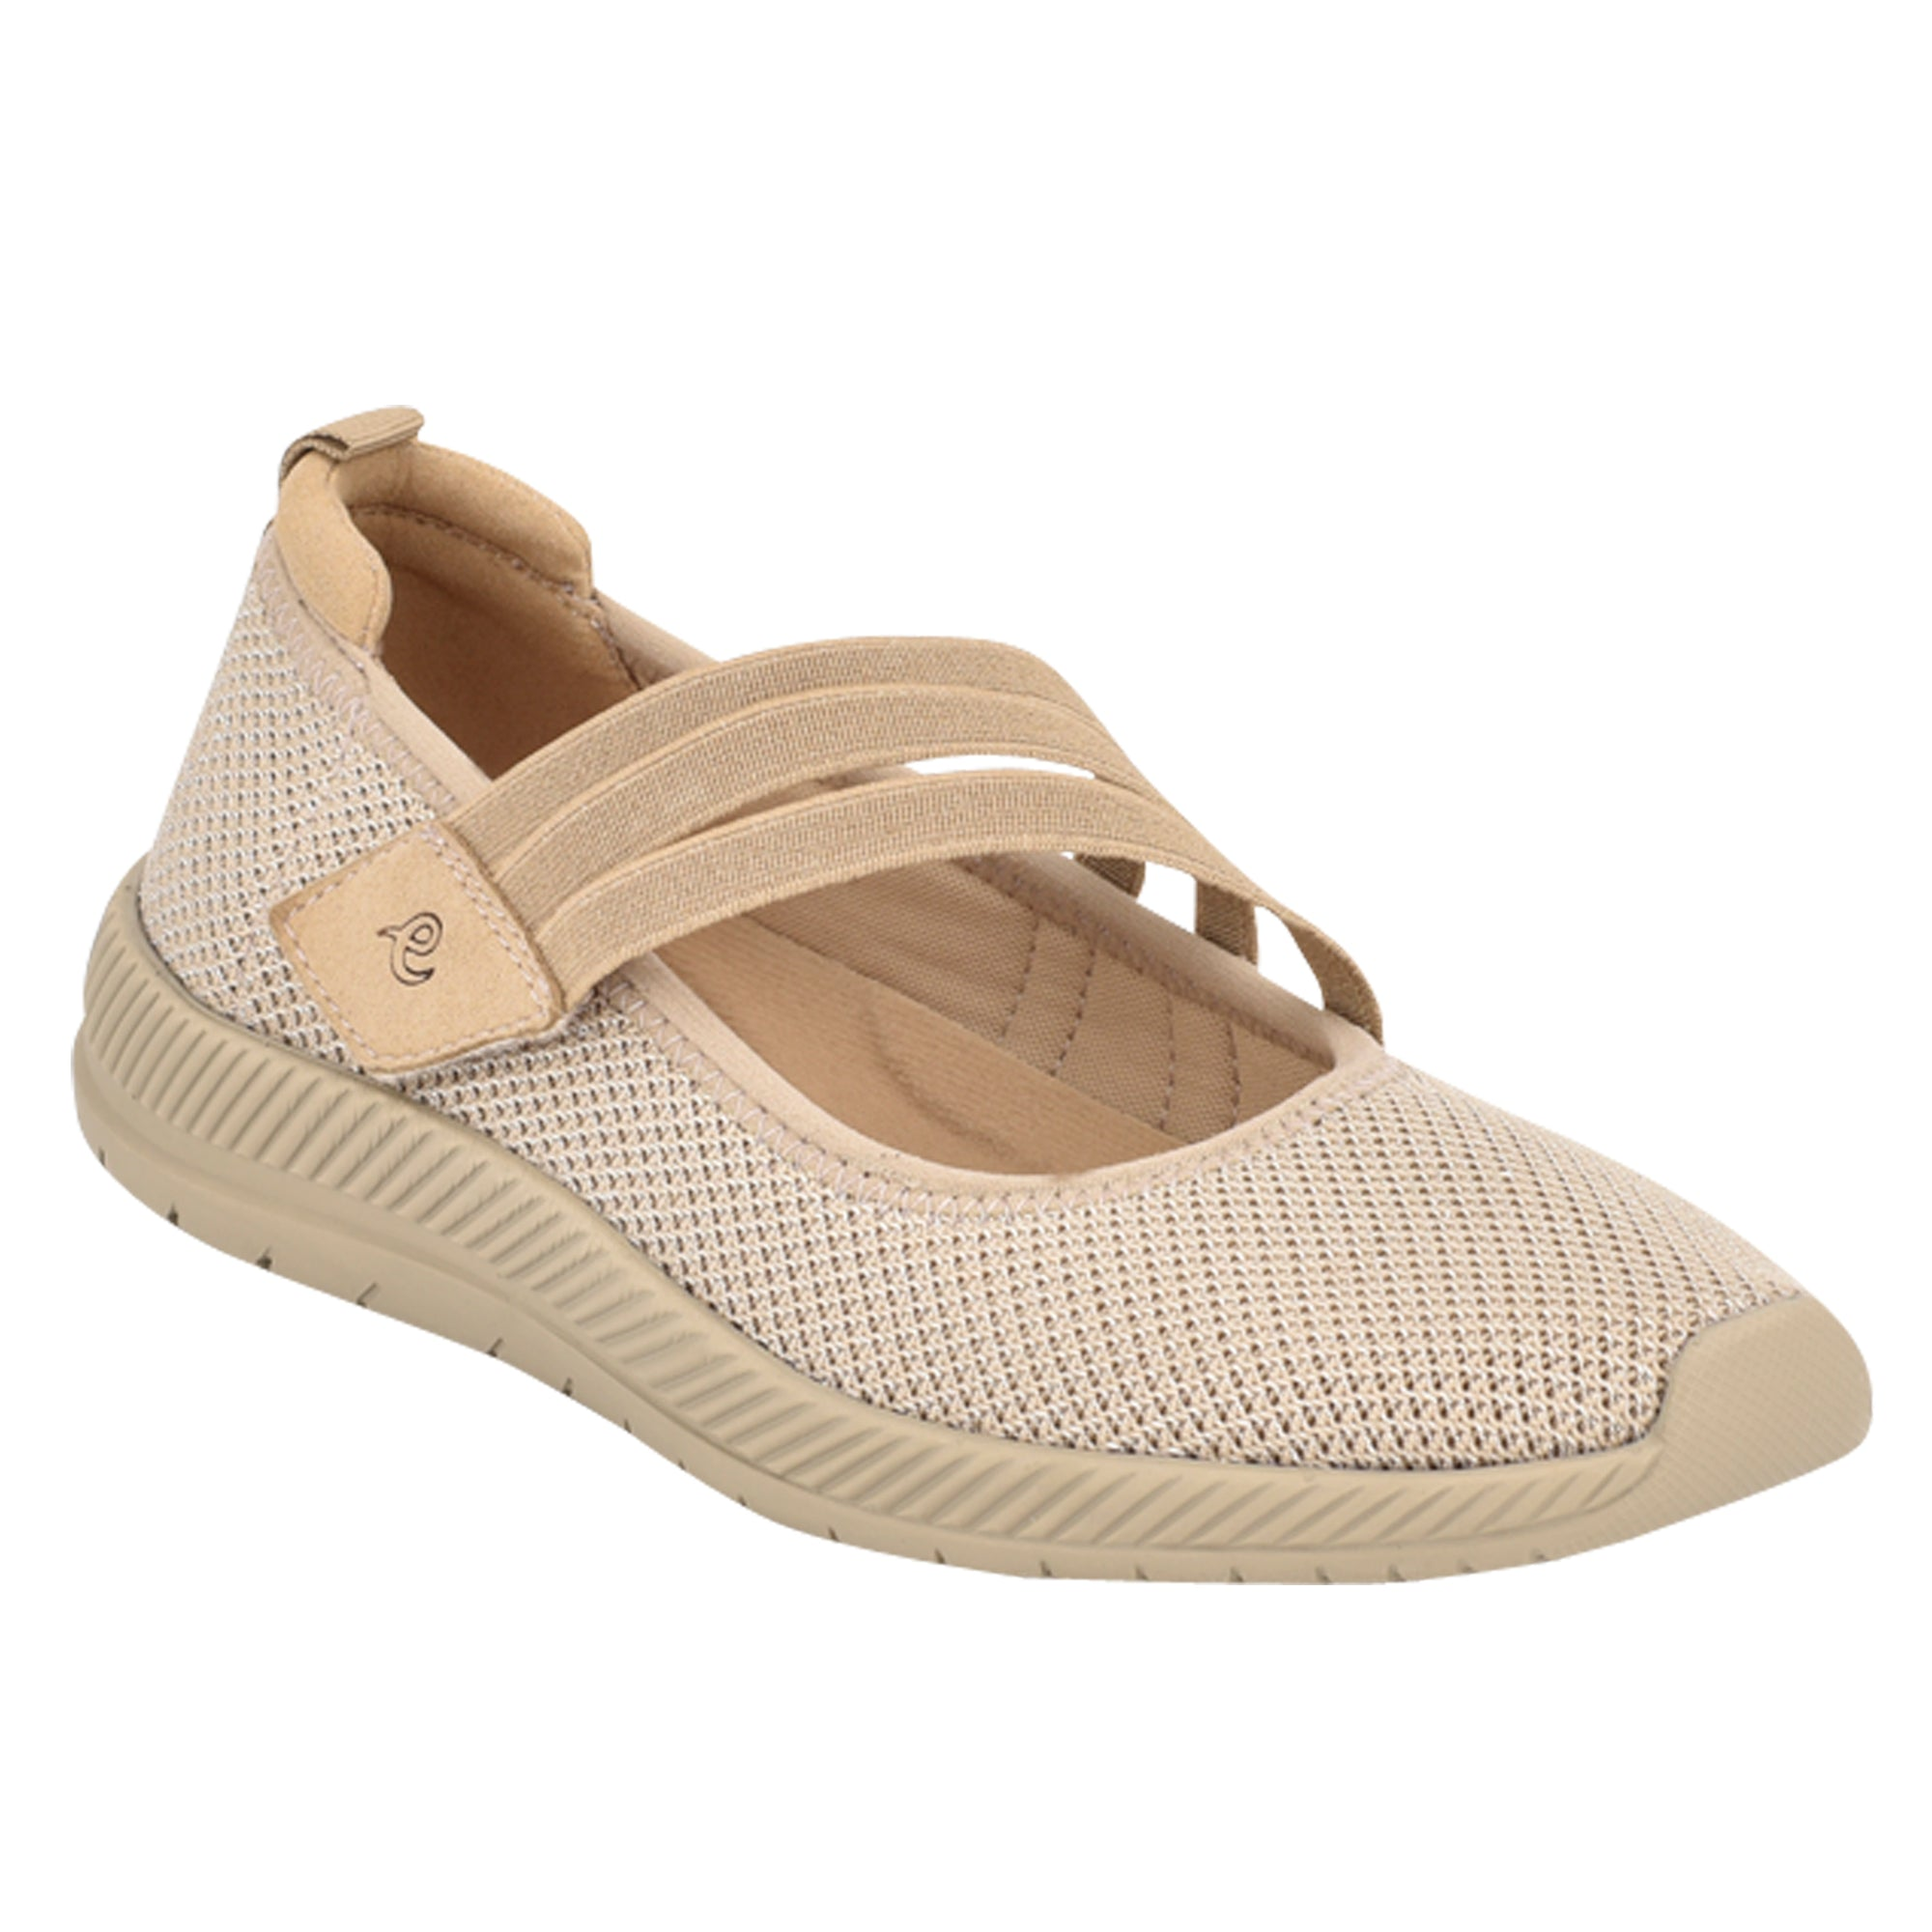 guin-mary-jane-walking-shoes-in-taupe-fabric